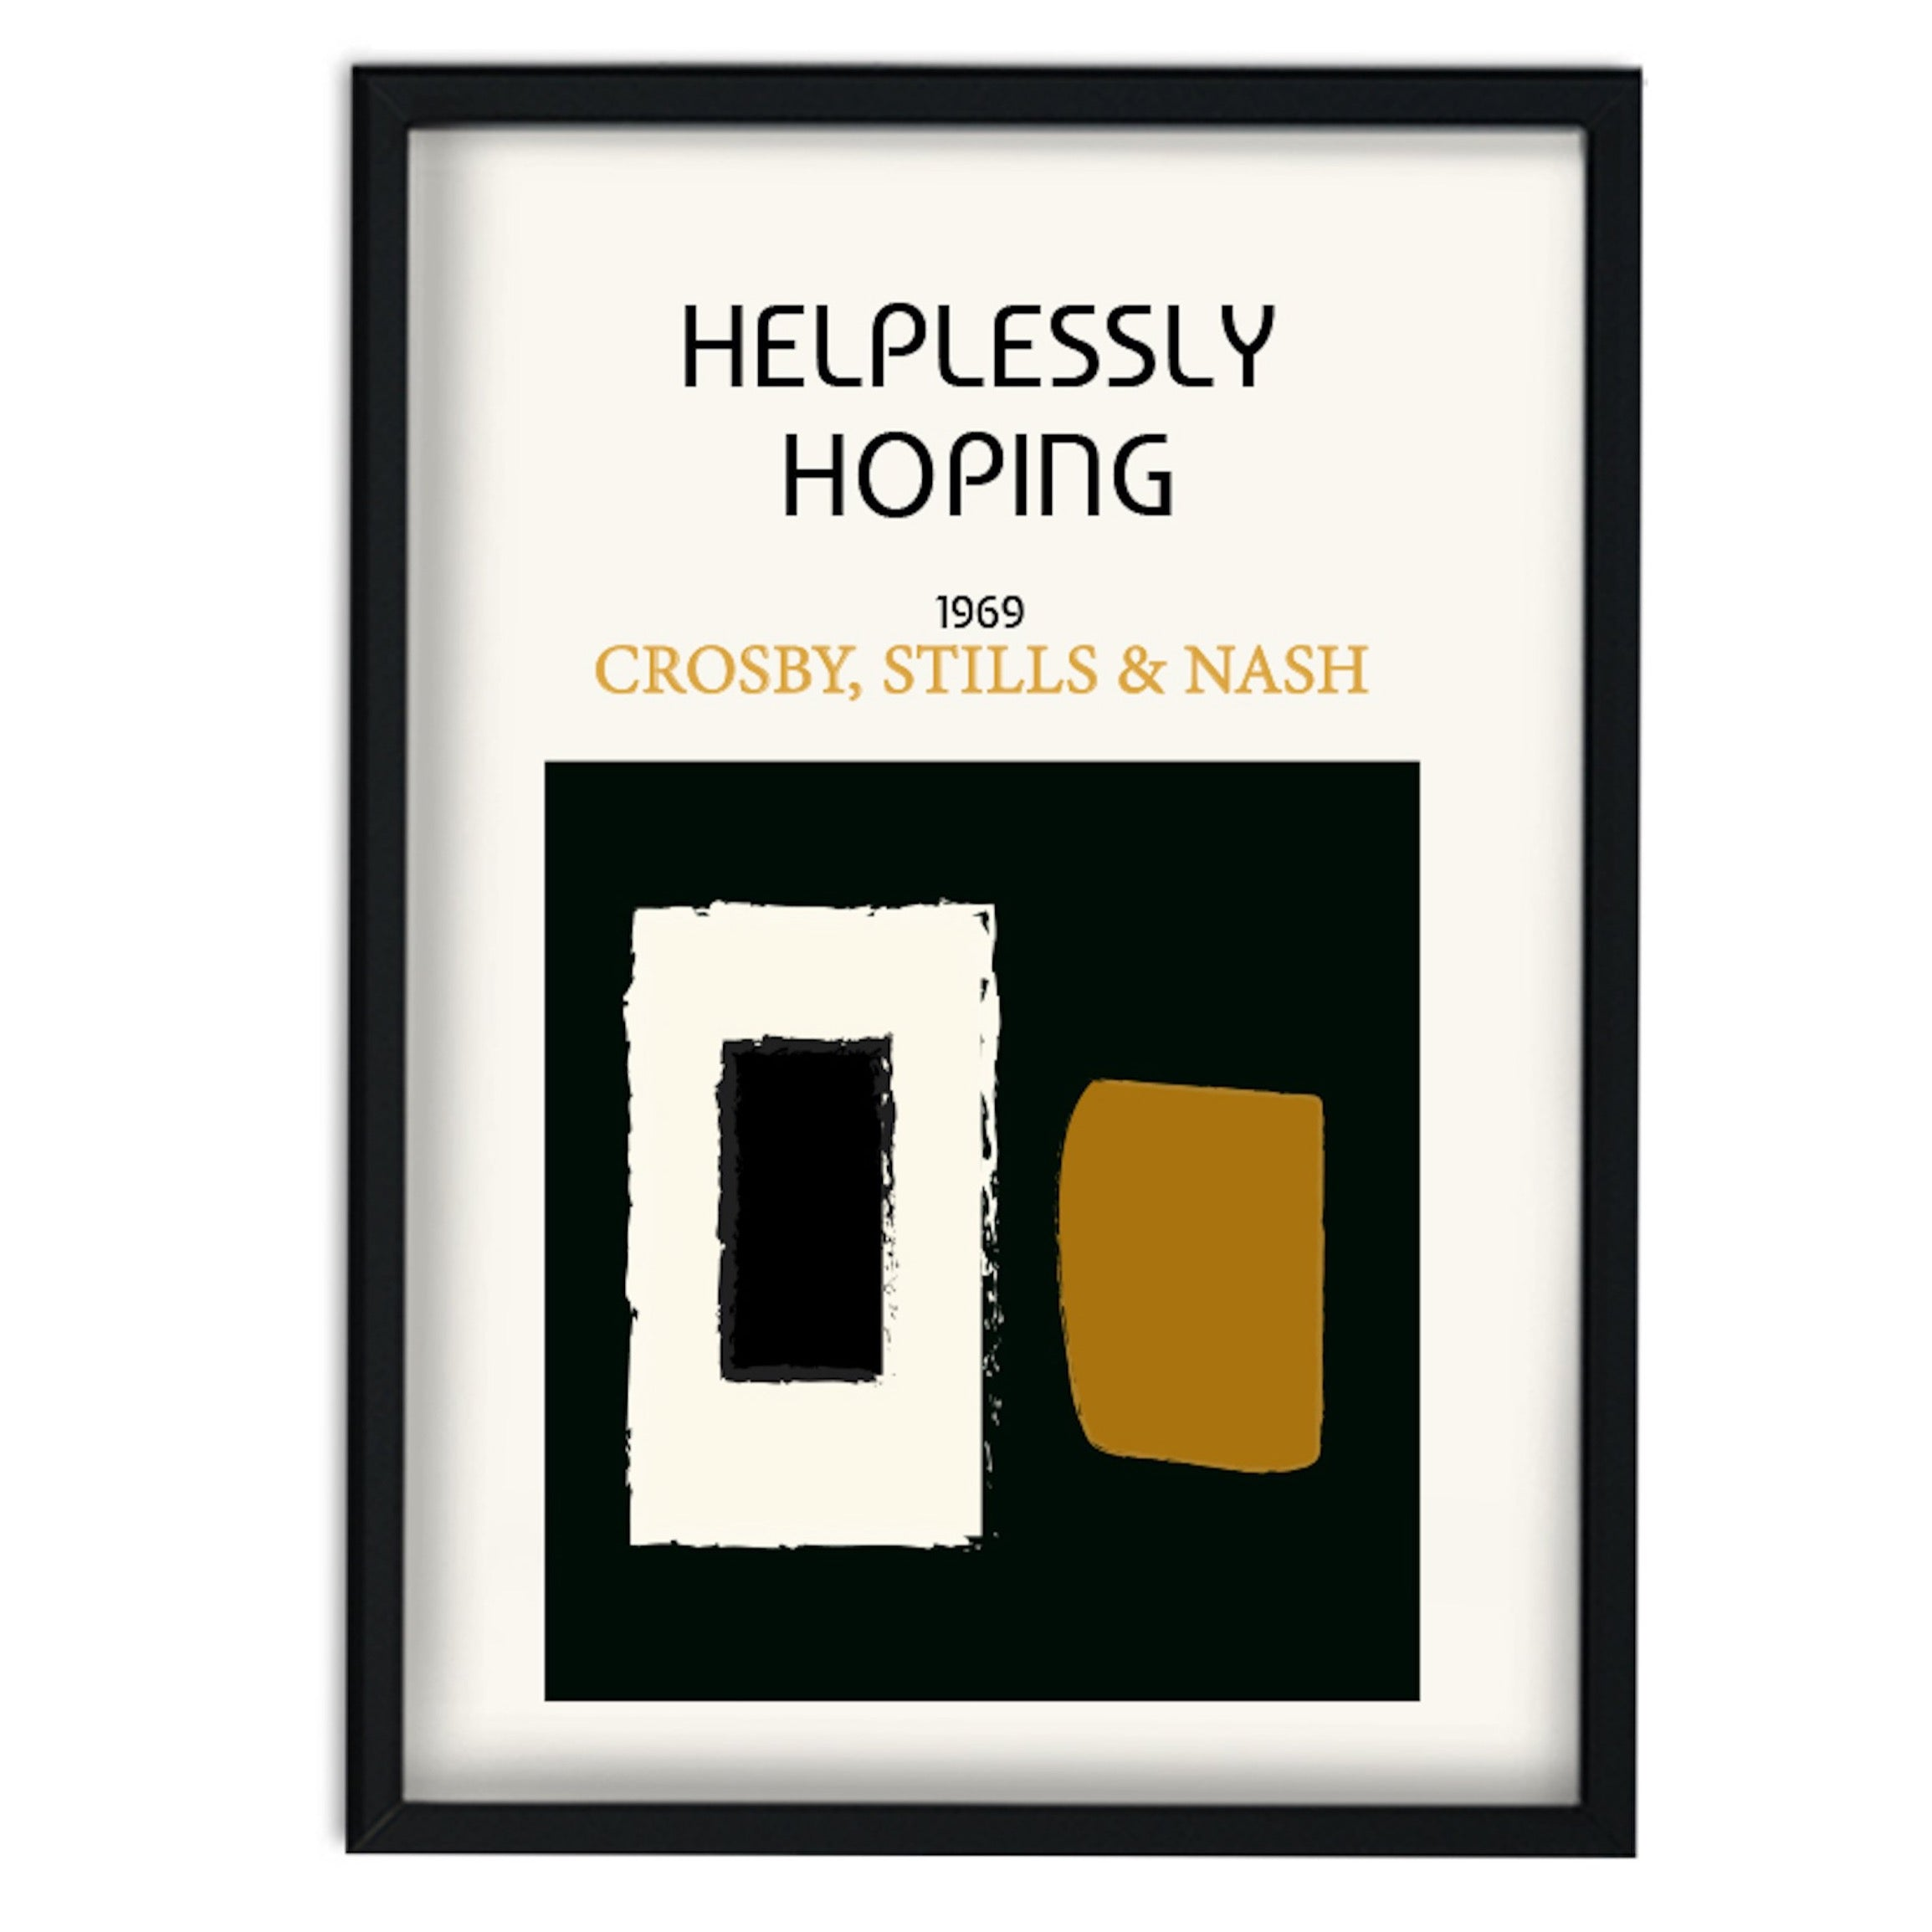 Helplessly Hoping Crosby, Stills & Nash Inspired A3 Retro Art Print